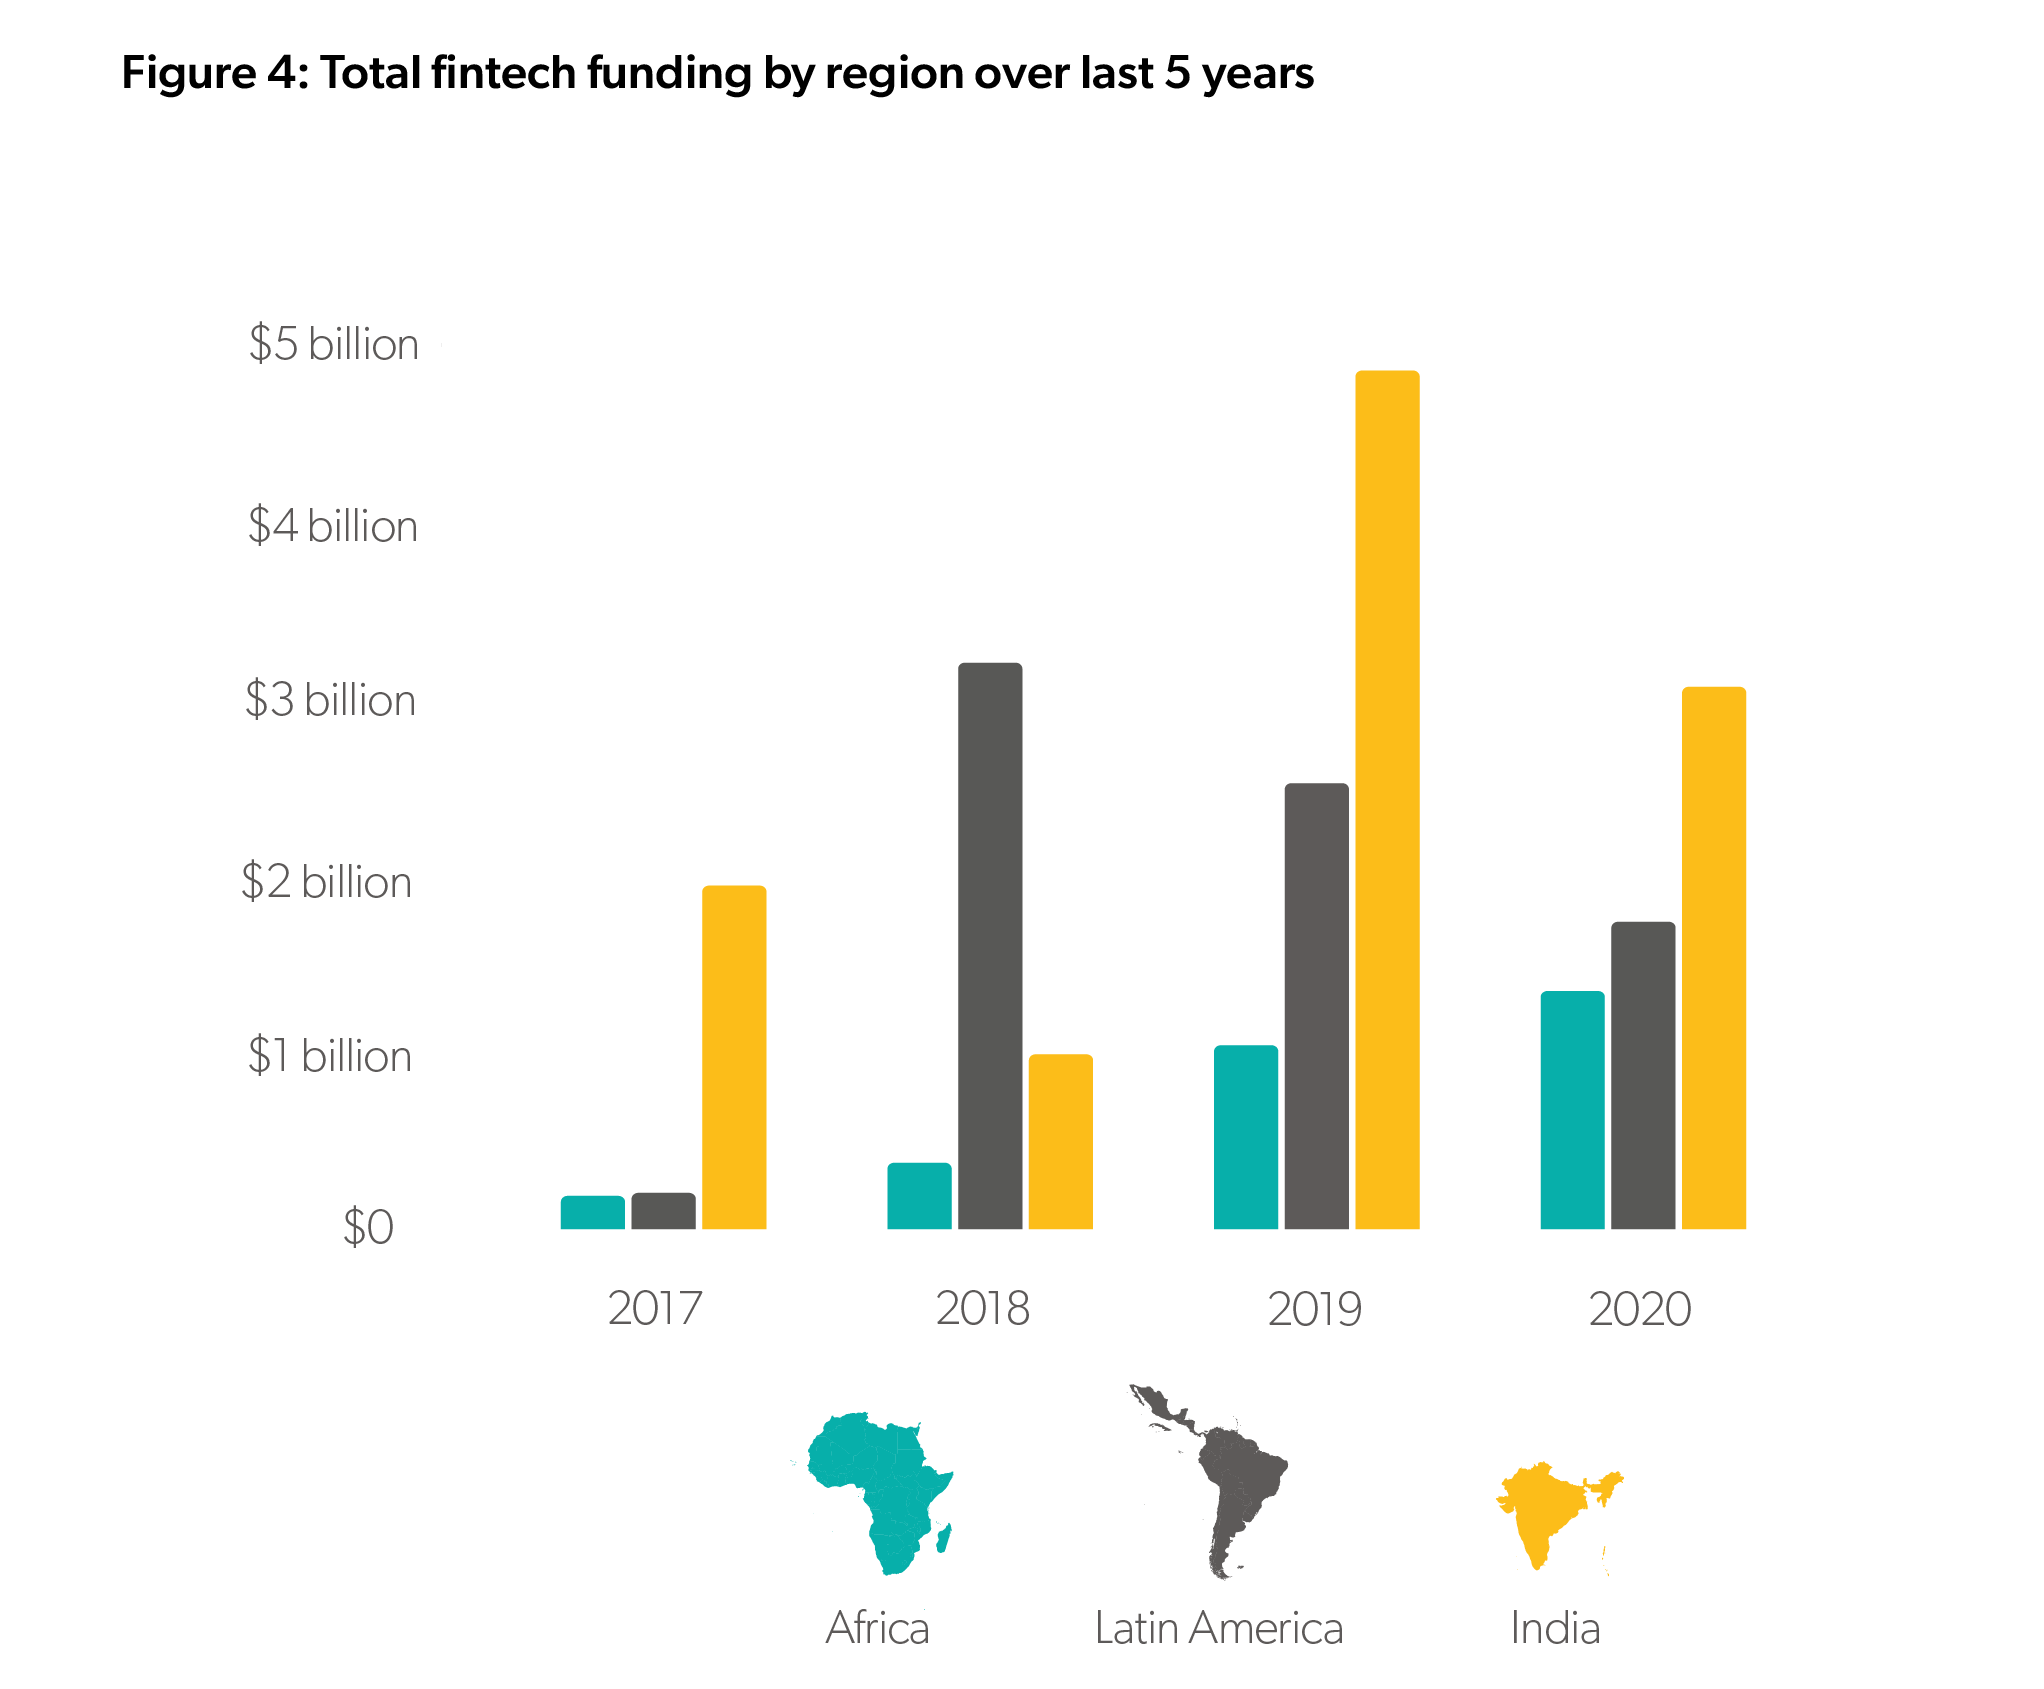 Payments, lending and neobanks rule fintechs in emerging markets, report says